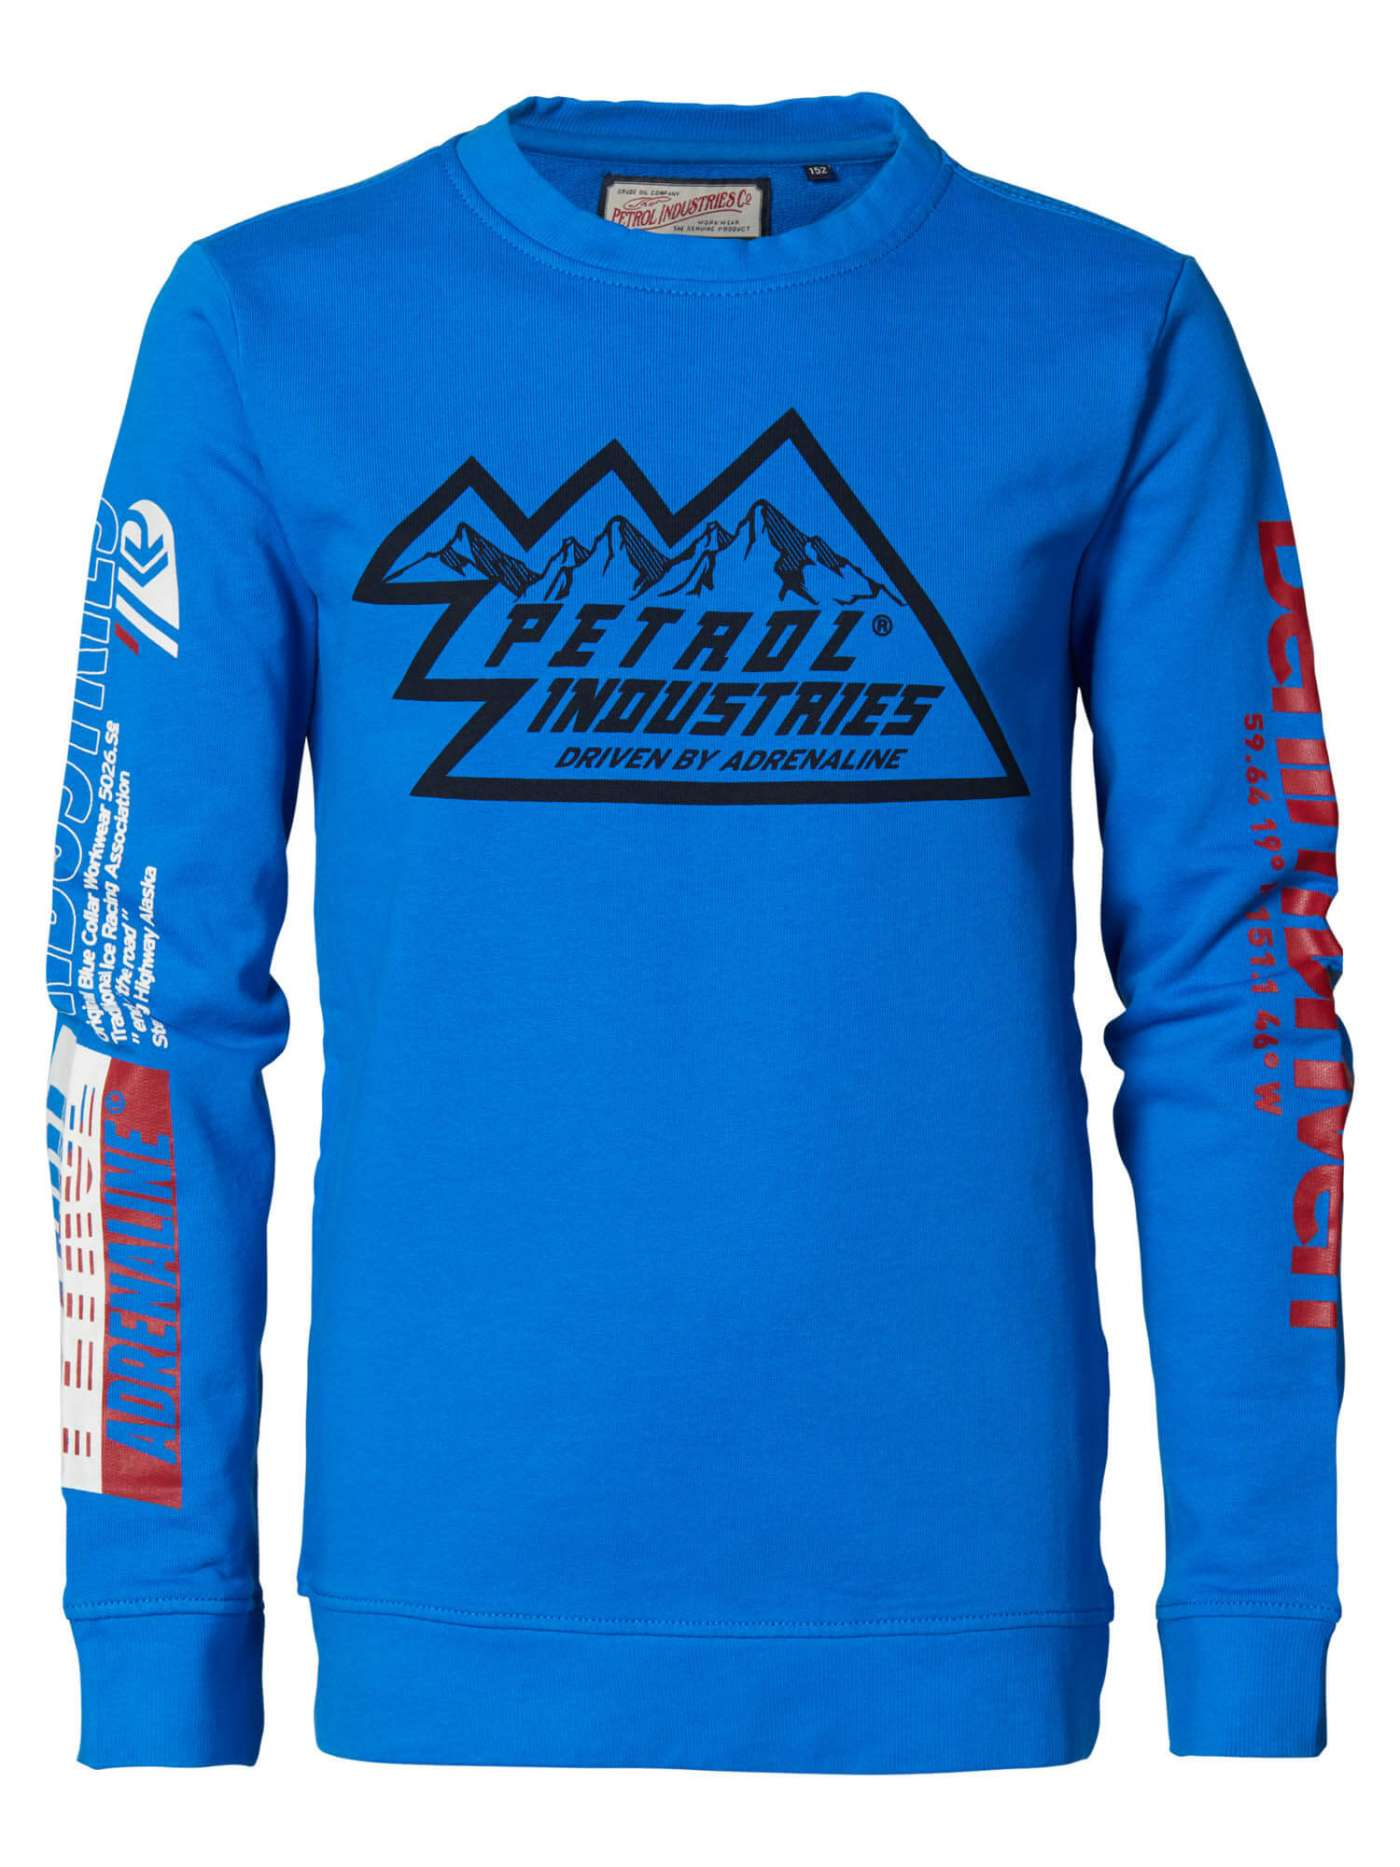 Pullover with logo artwork